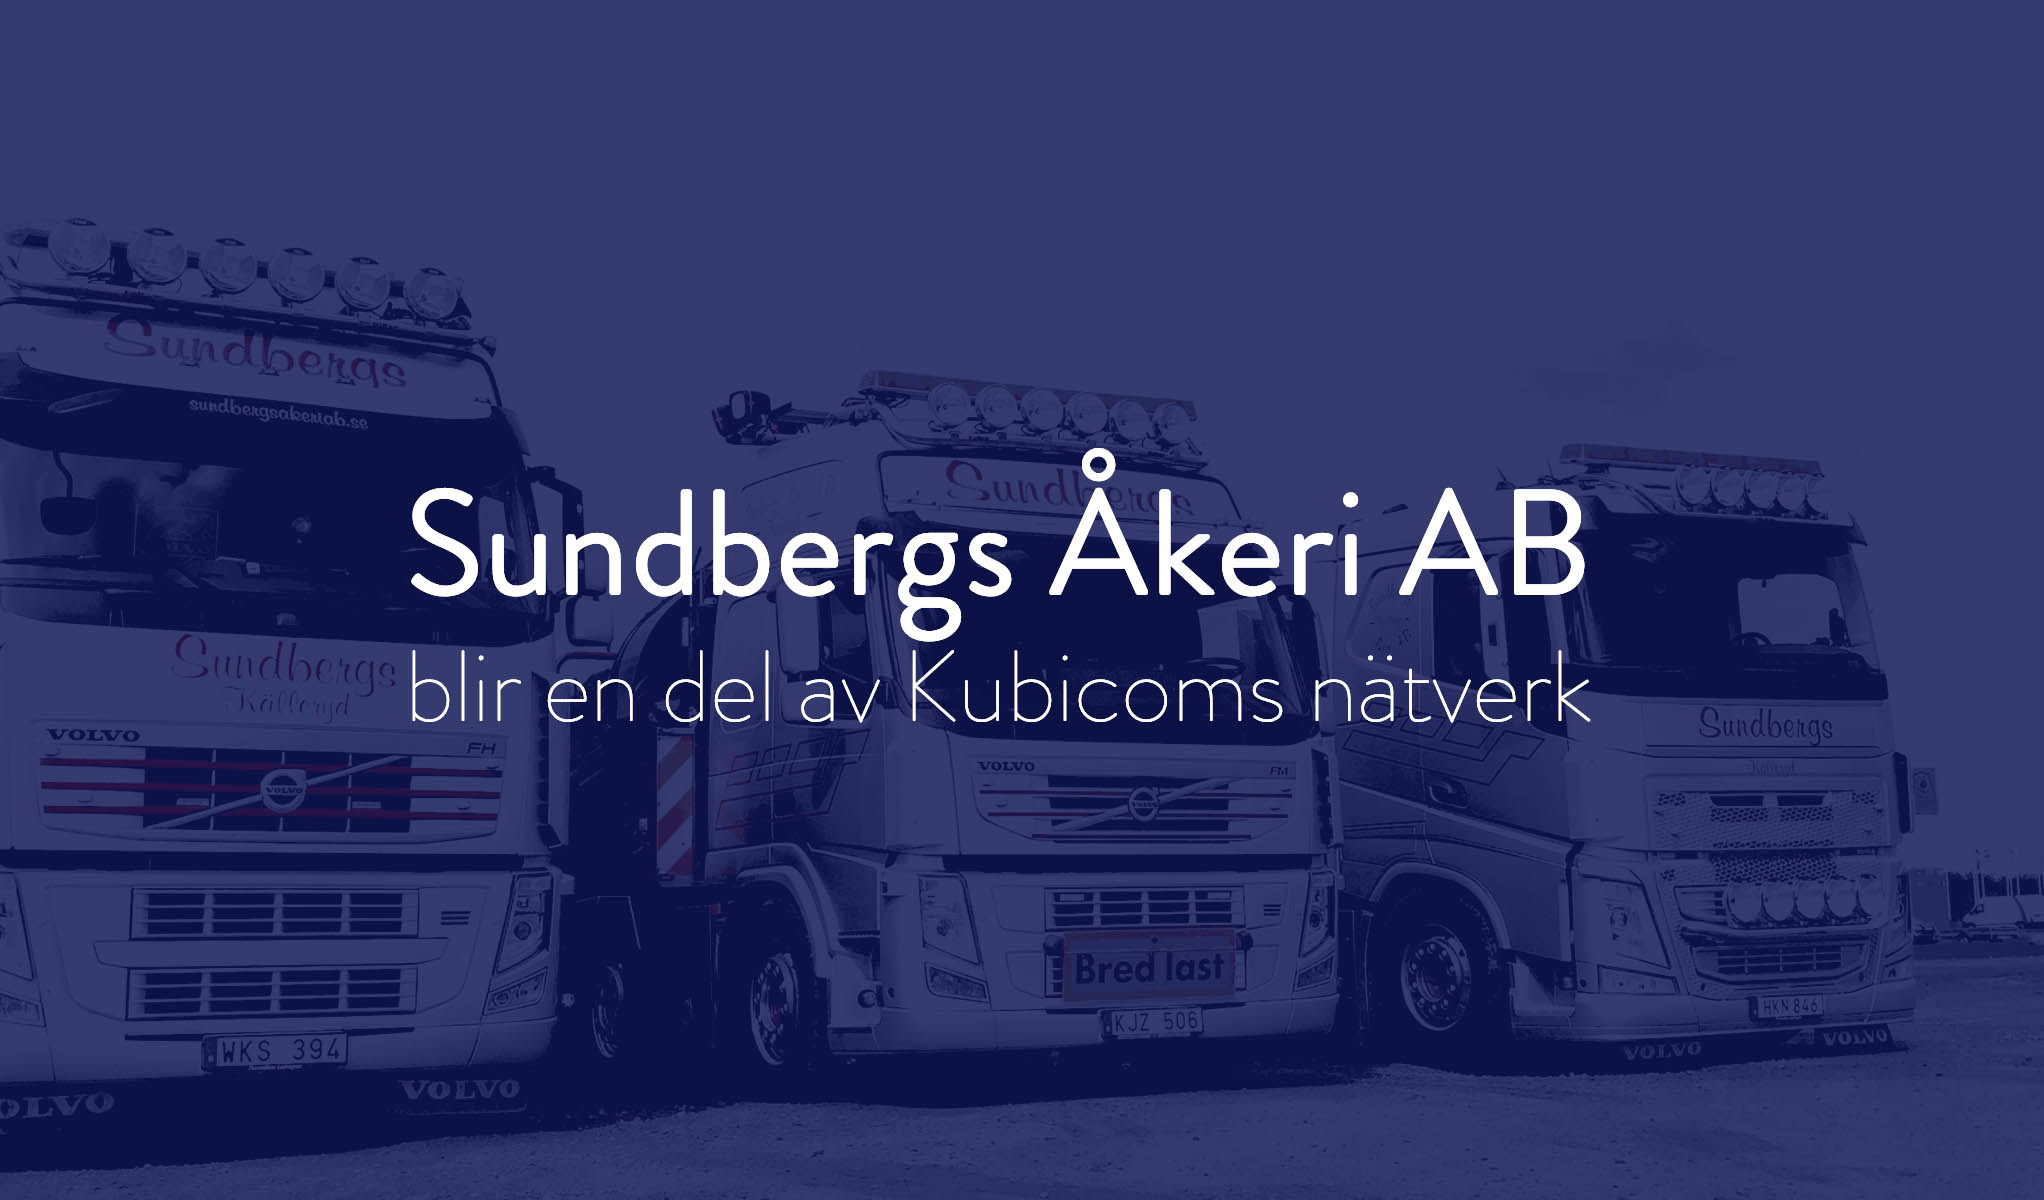 Sundbergs Åkeri AB becomes part of Kubicom's digital supplier network